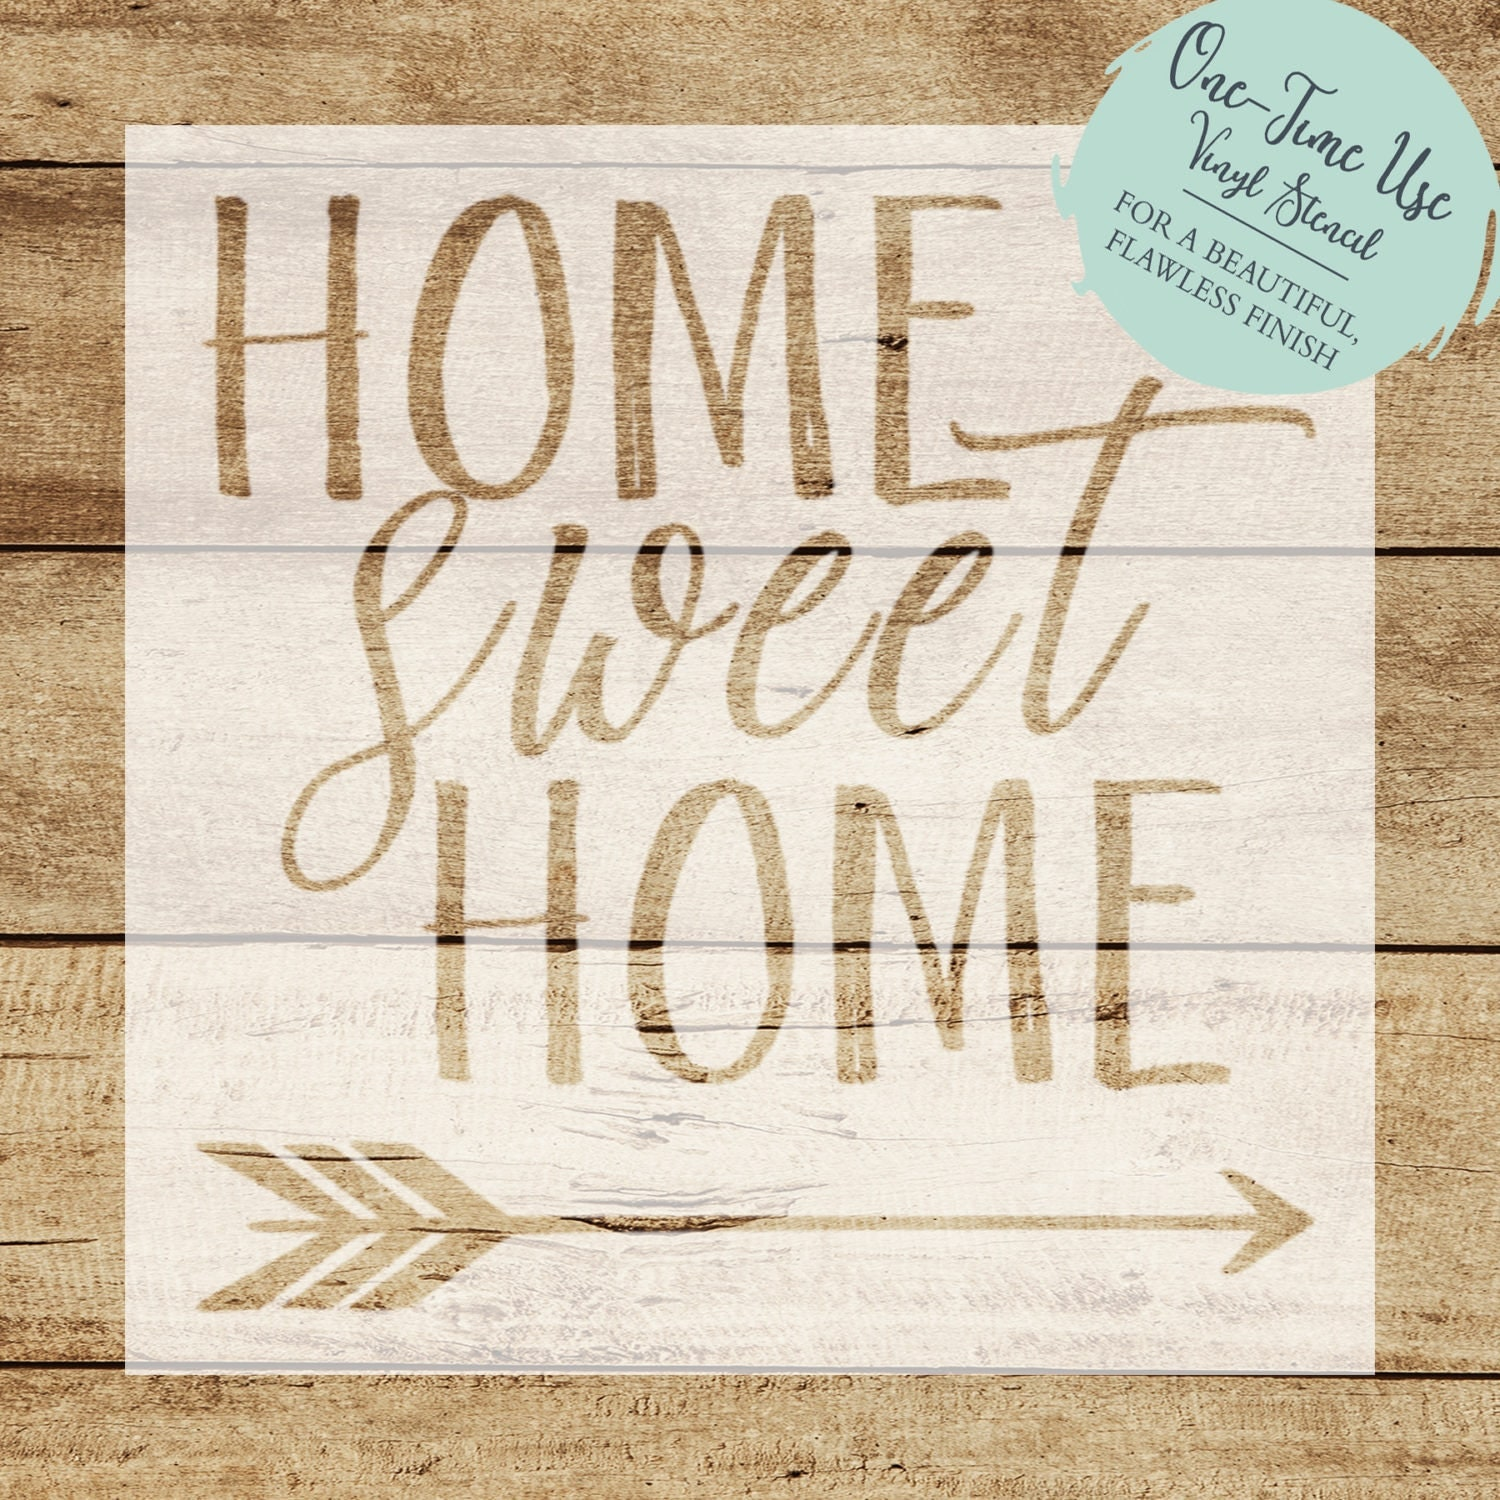 Primitive stencil home sweet home 12x12 for painting signs crafts -  10 12